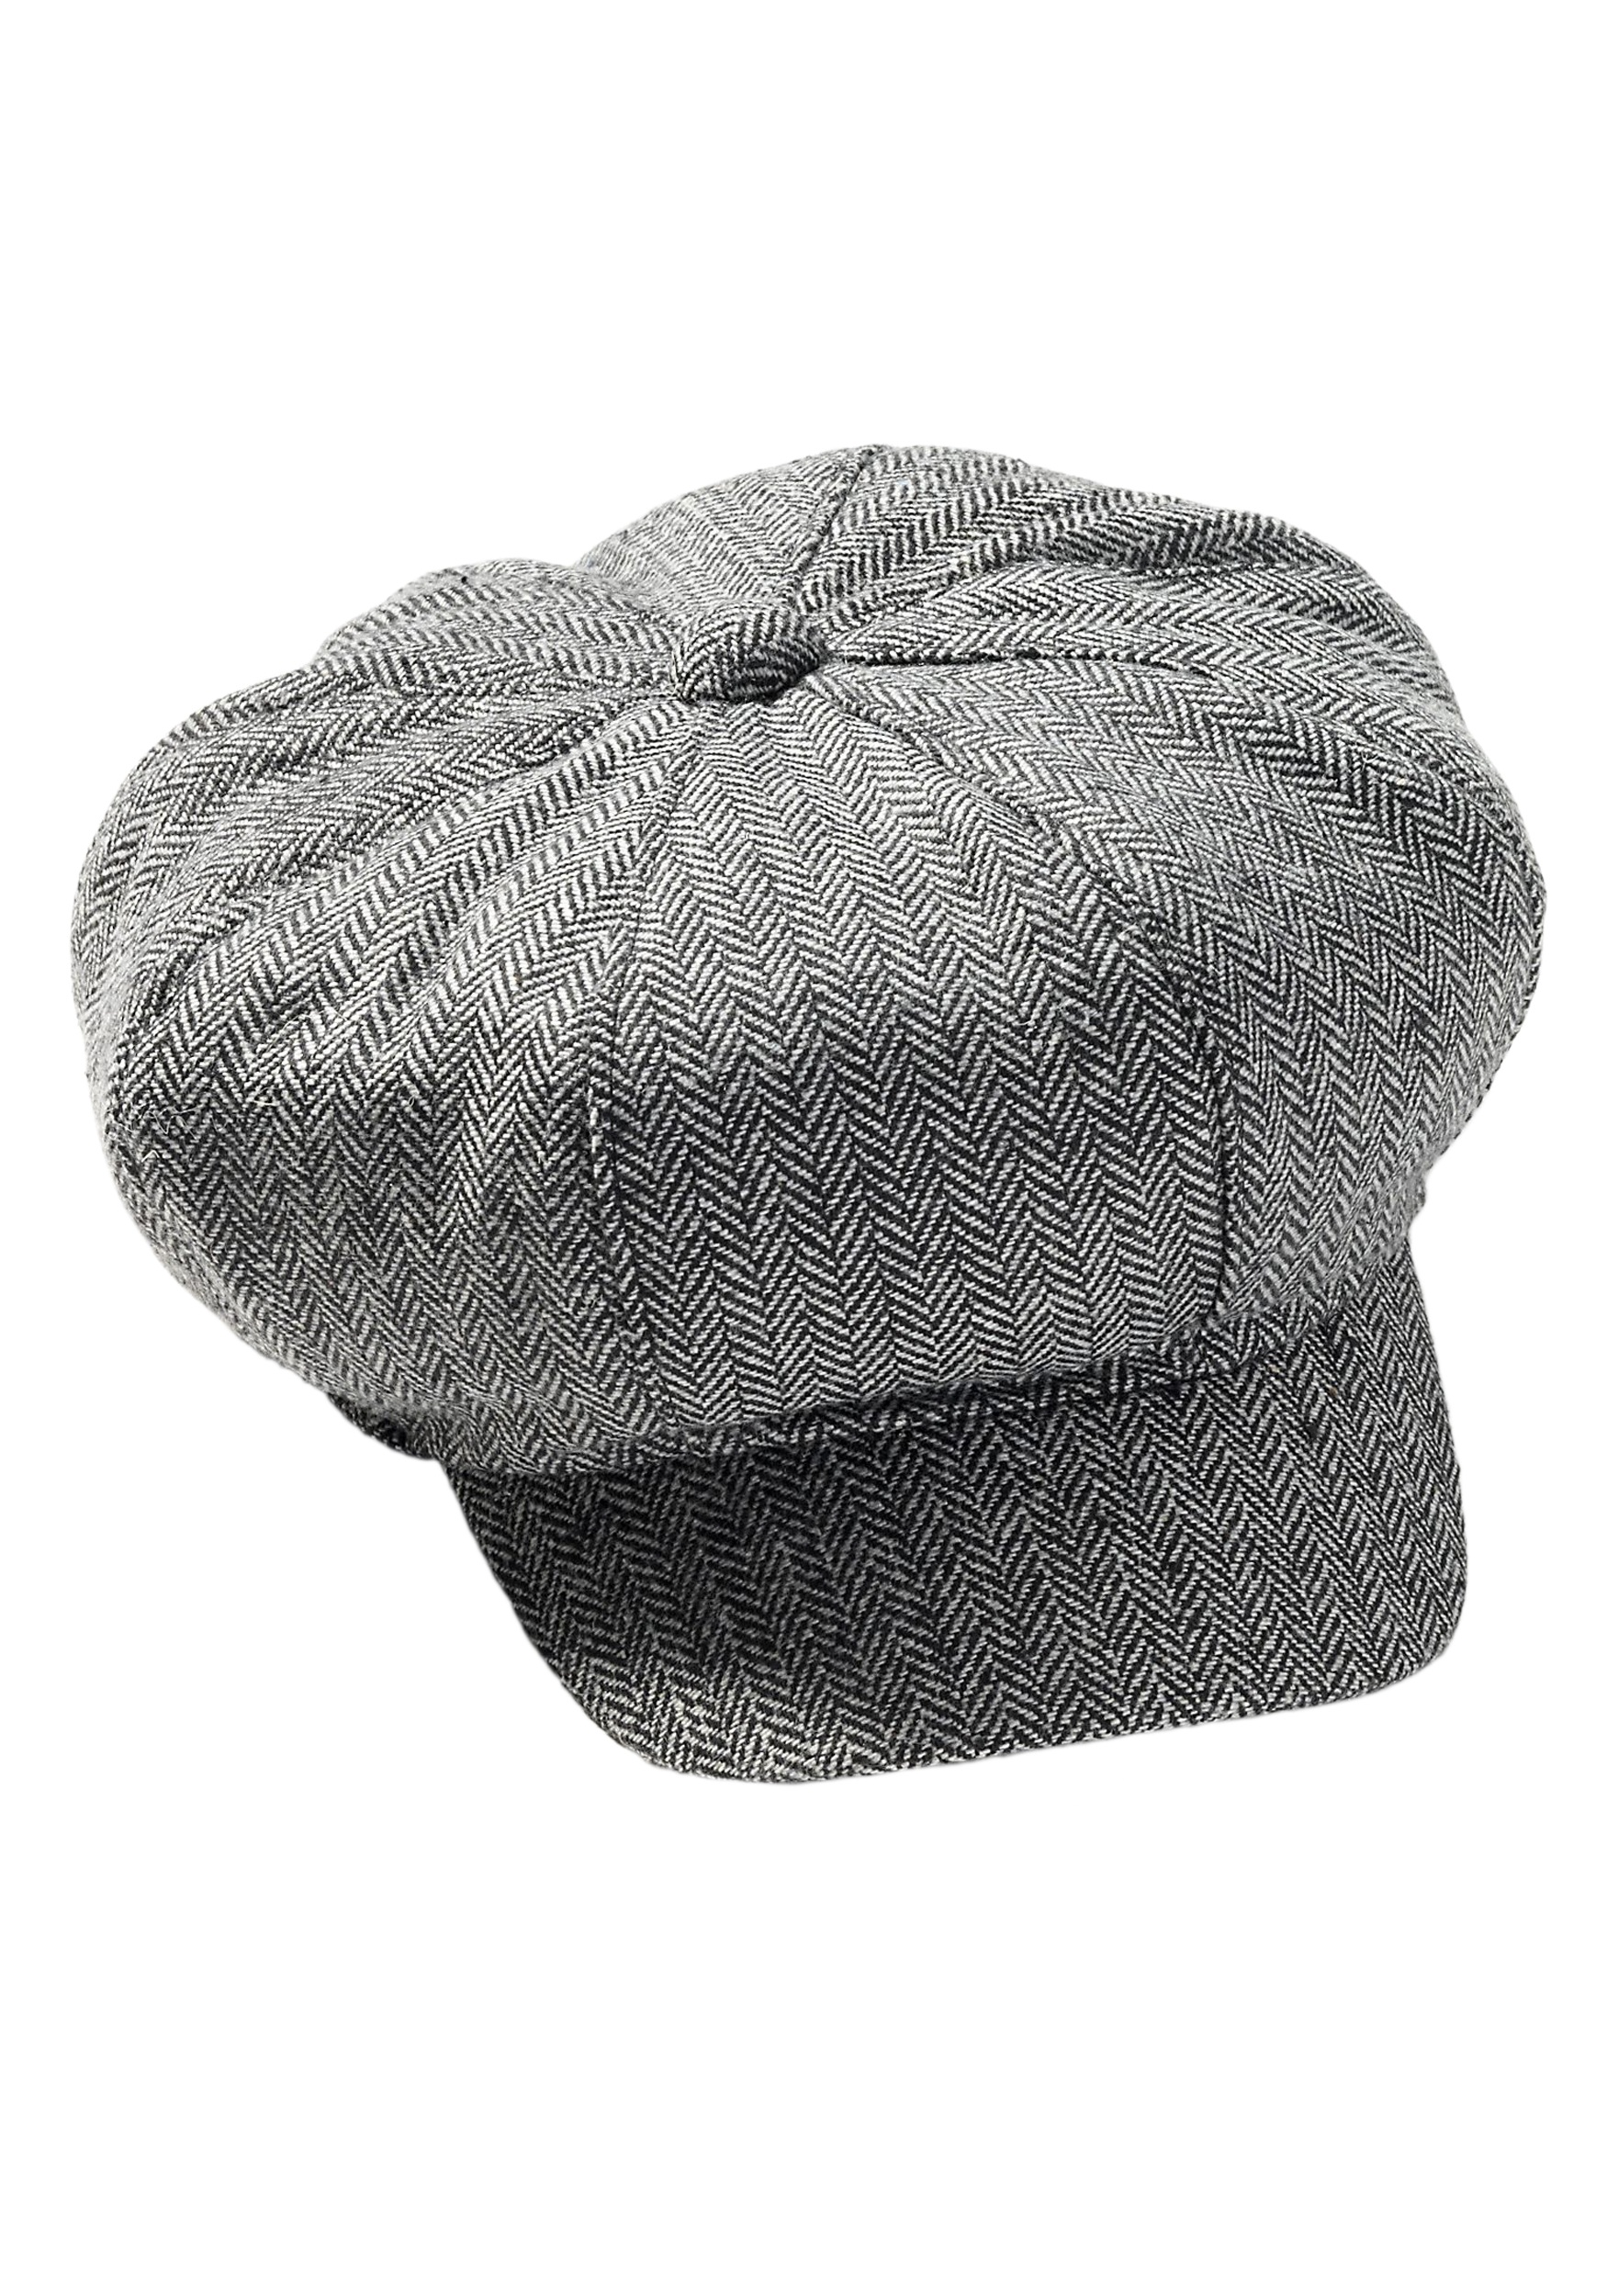 Tweed Newsboy Hat